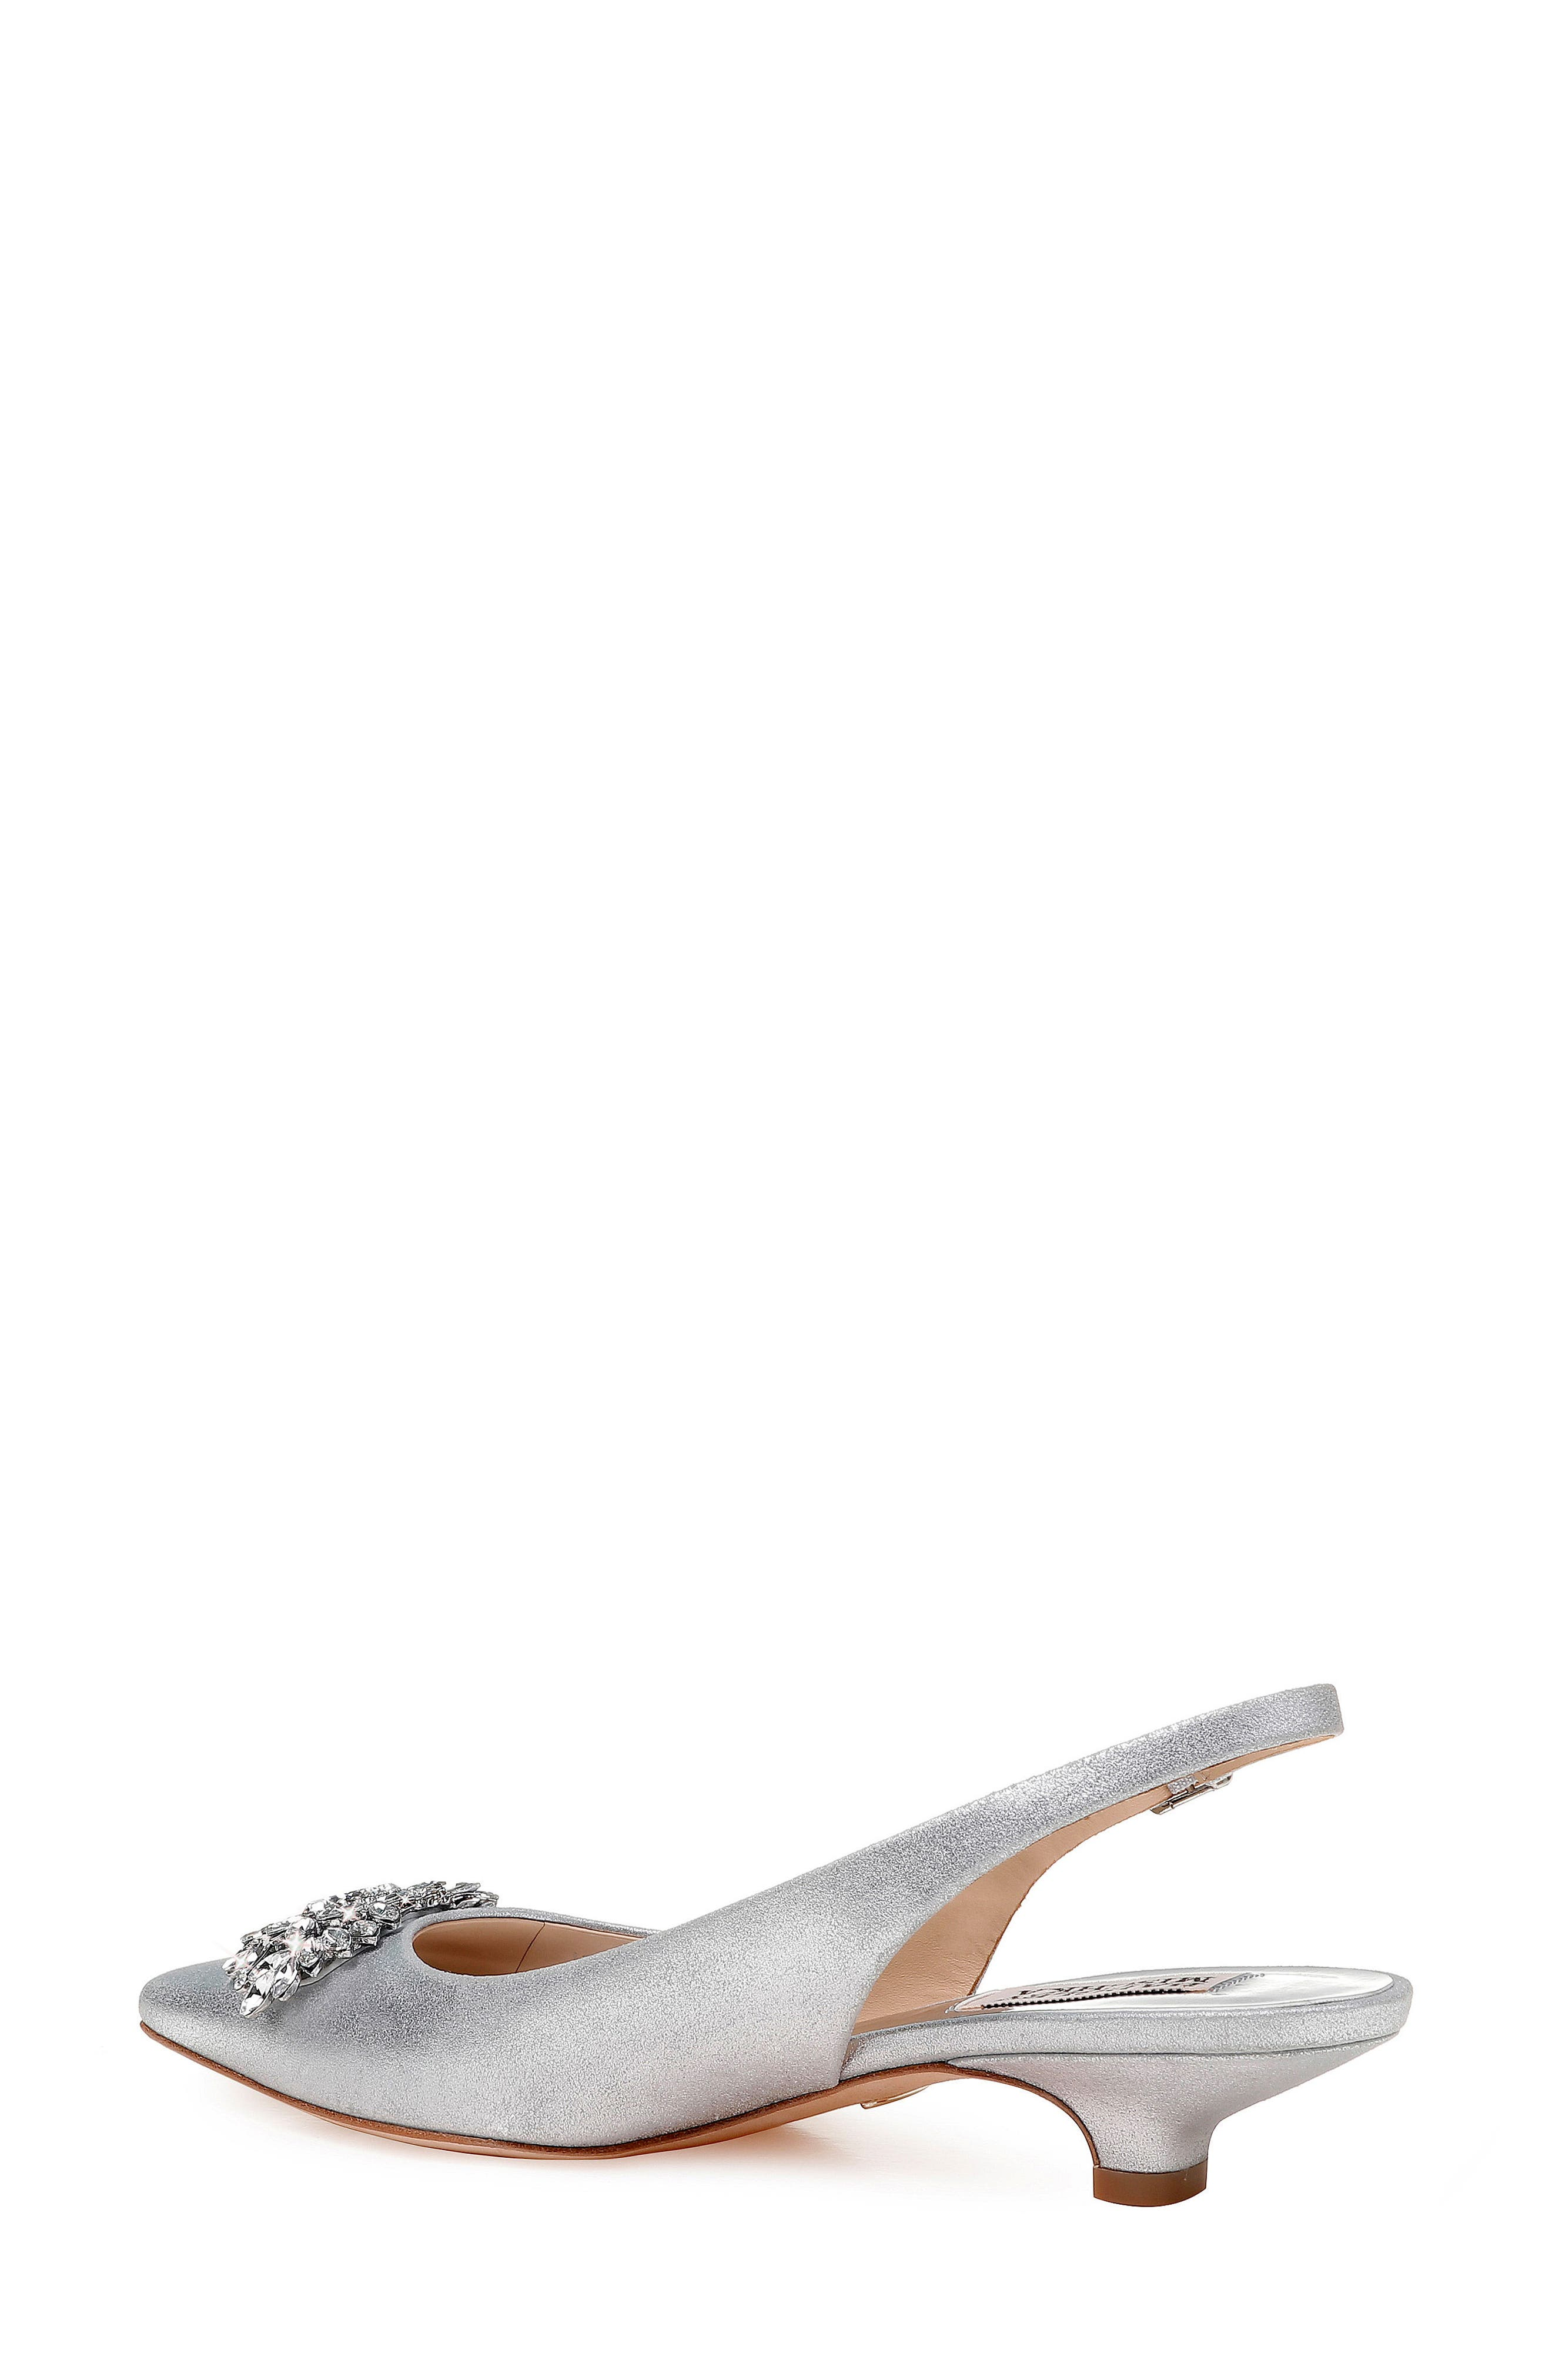 Page Slingback Pump,                             Alternate thumbnail 2, color,                             Silver Metallic Suede